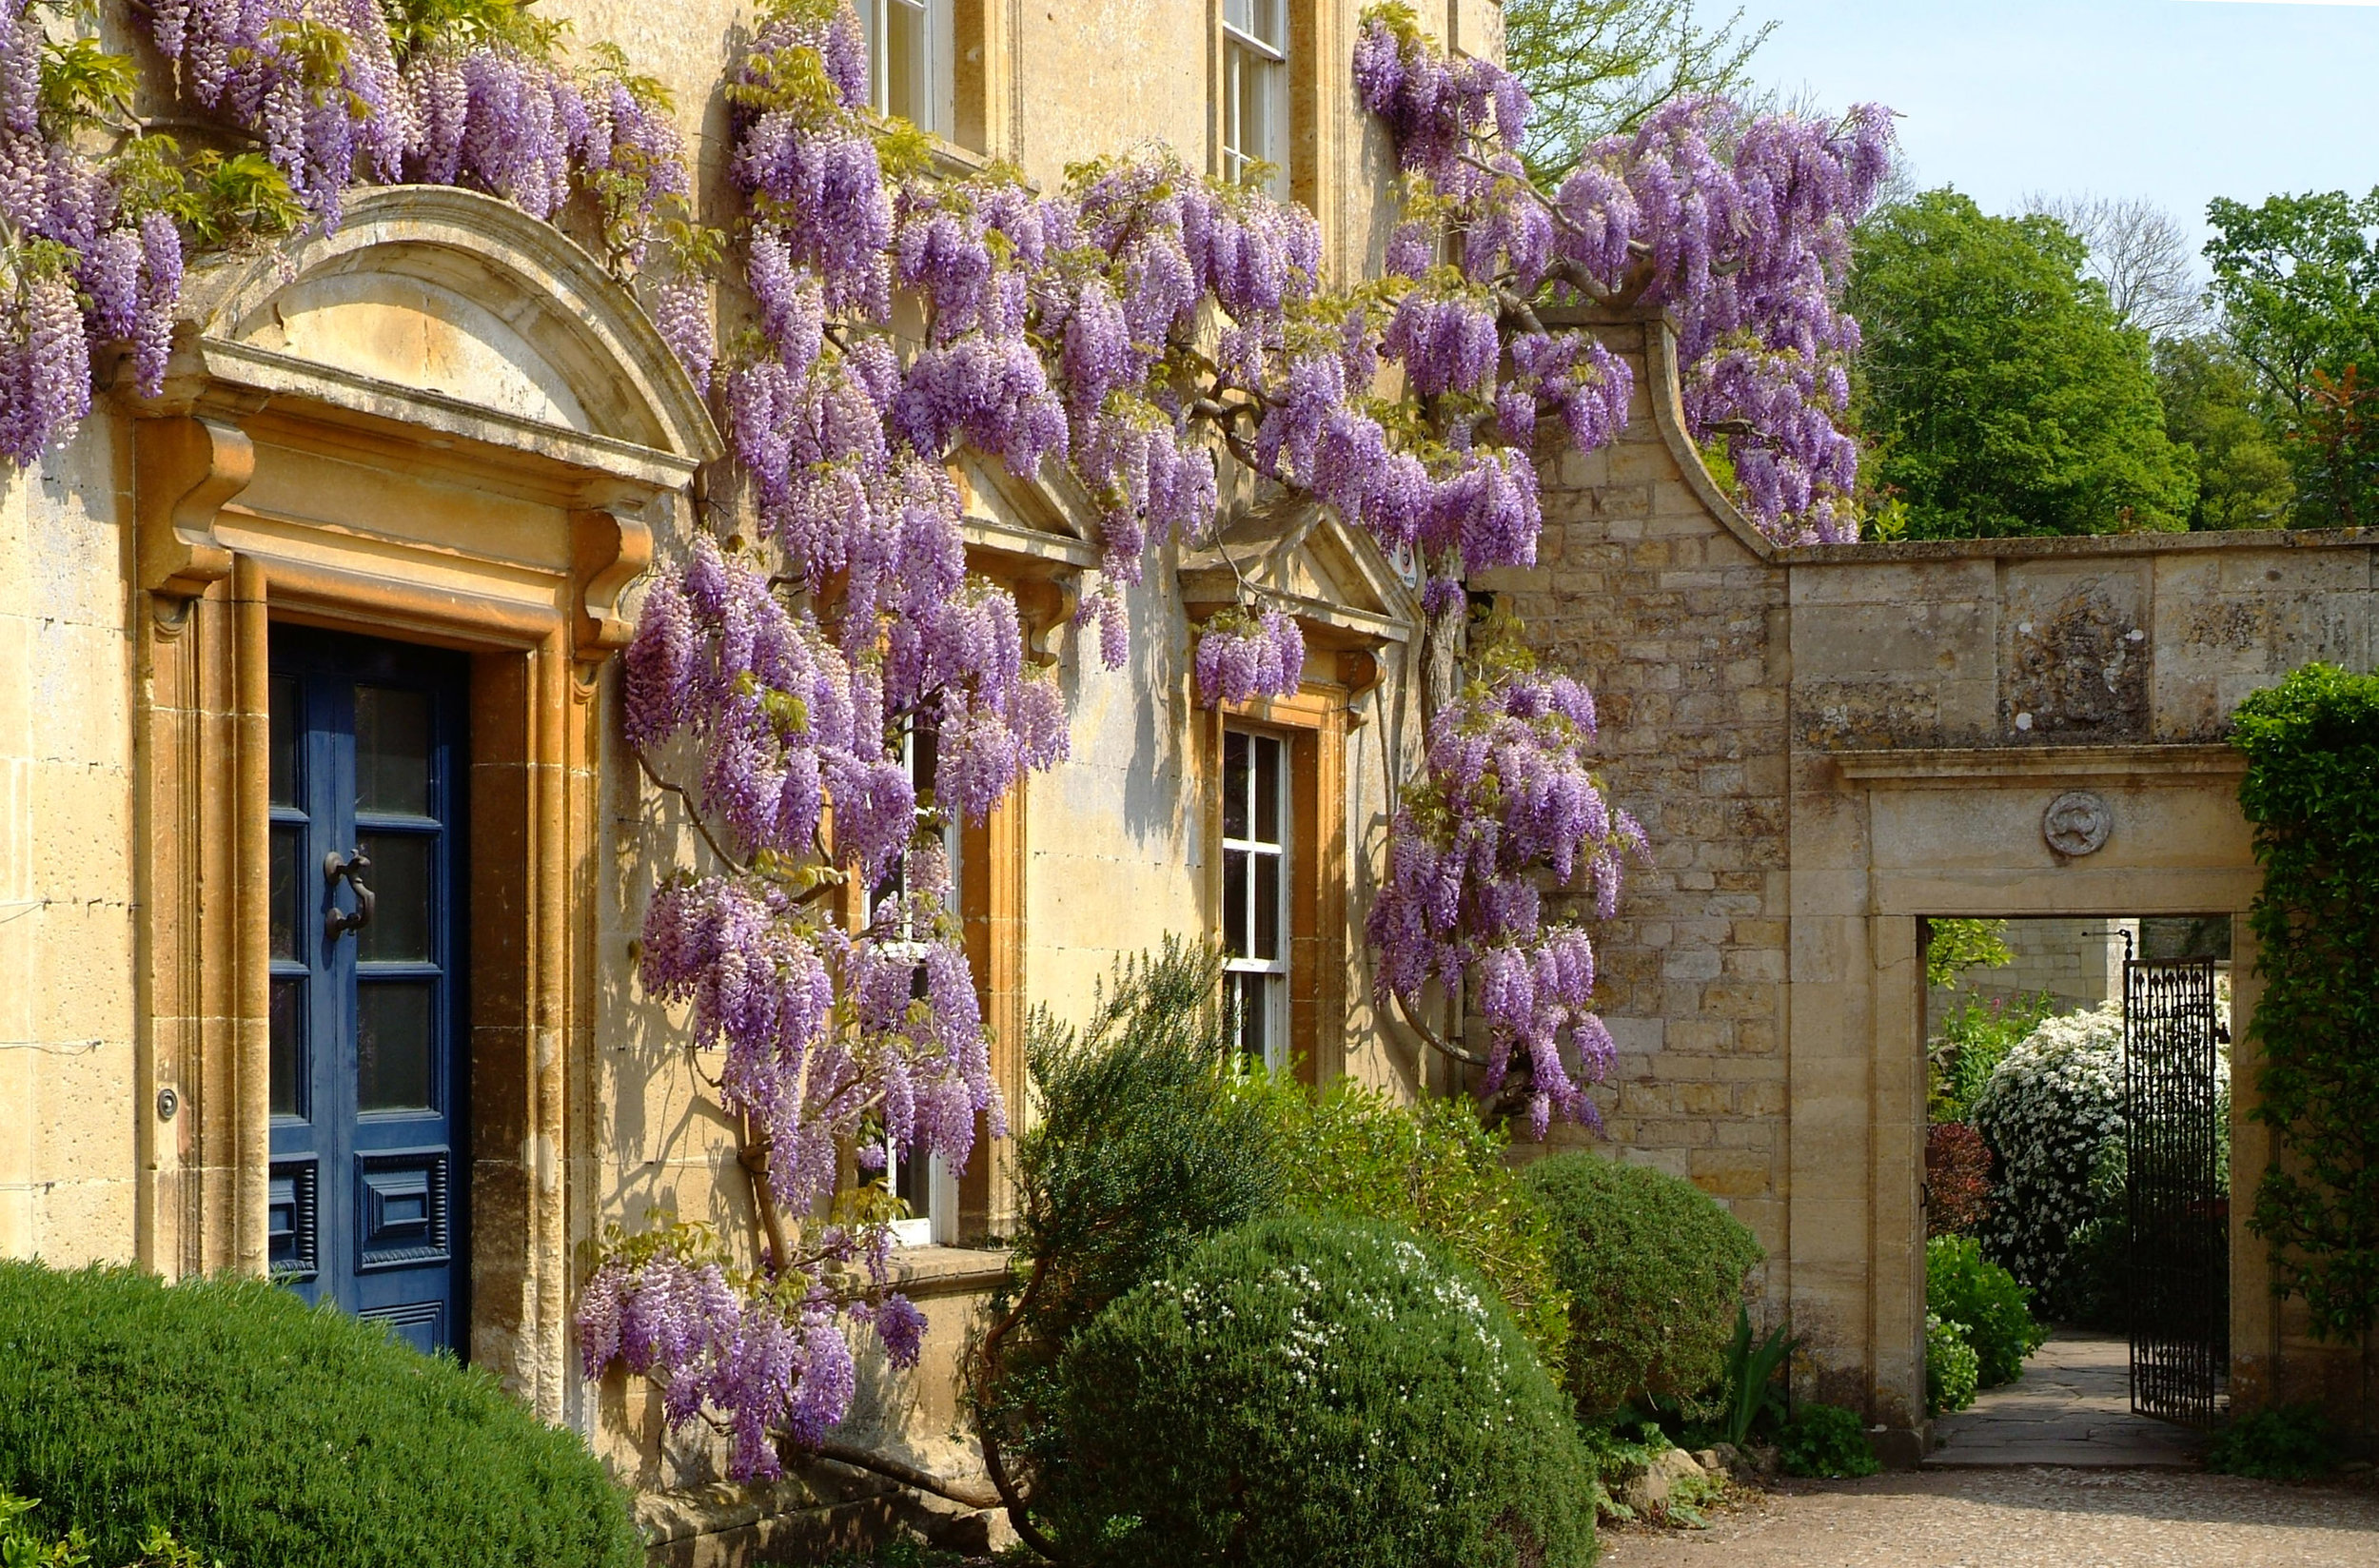 Wisteria over the front door